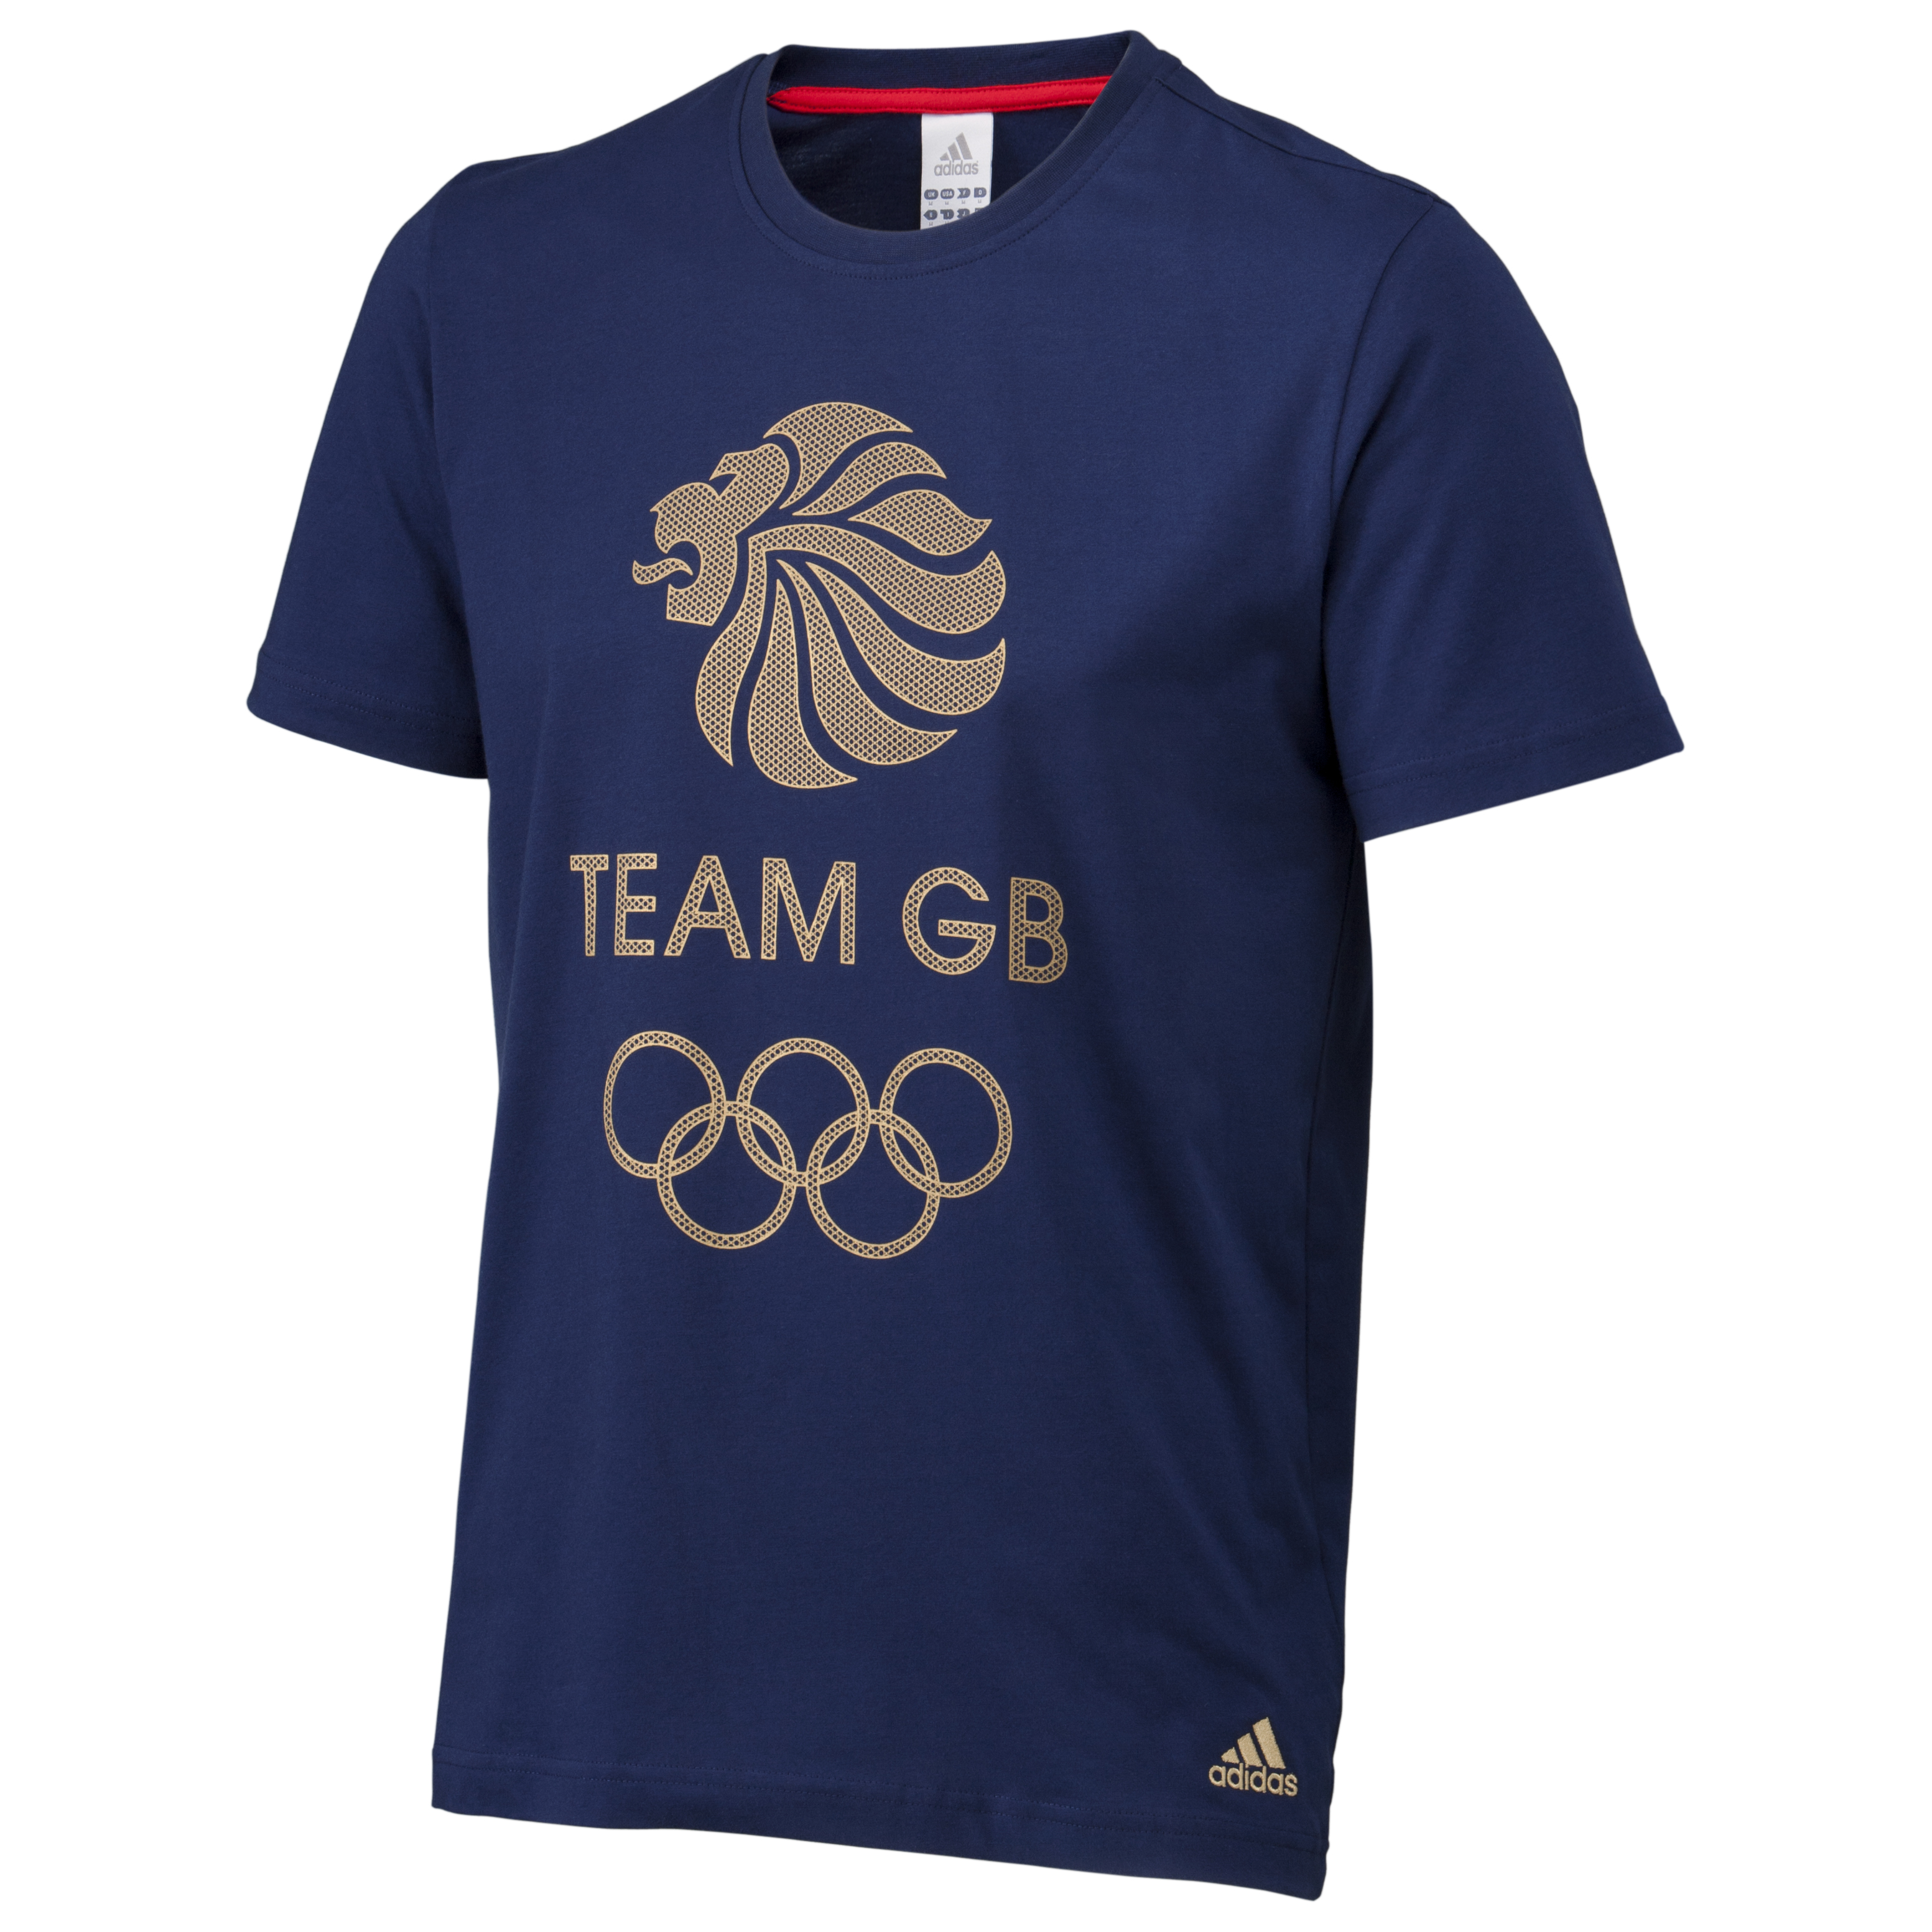 adidas Team GB Logo T-Shirt - New Navy